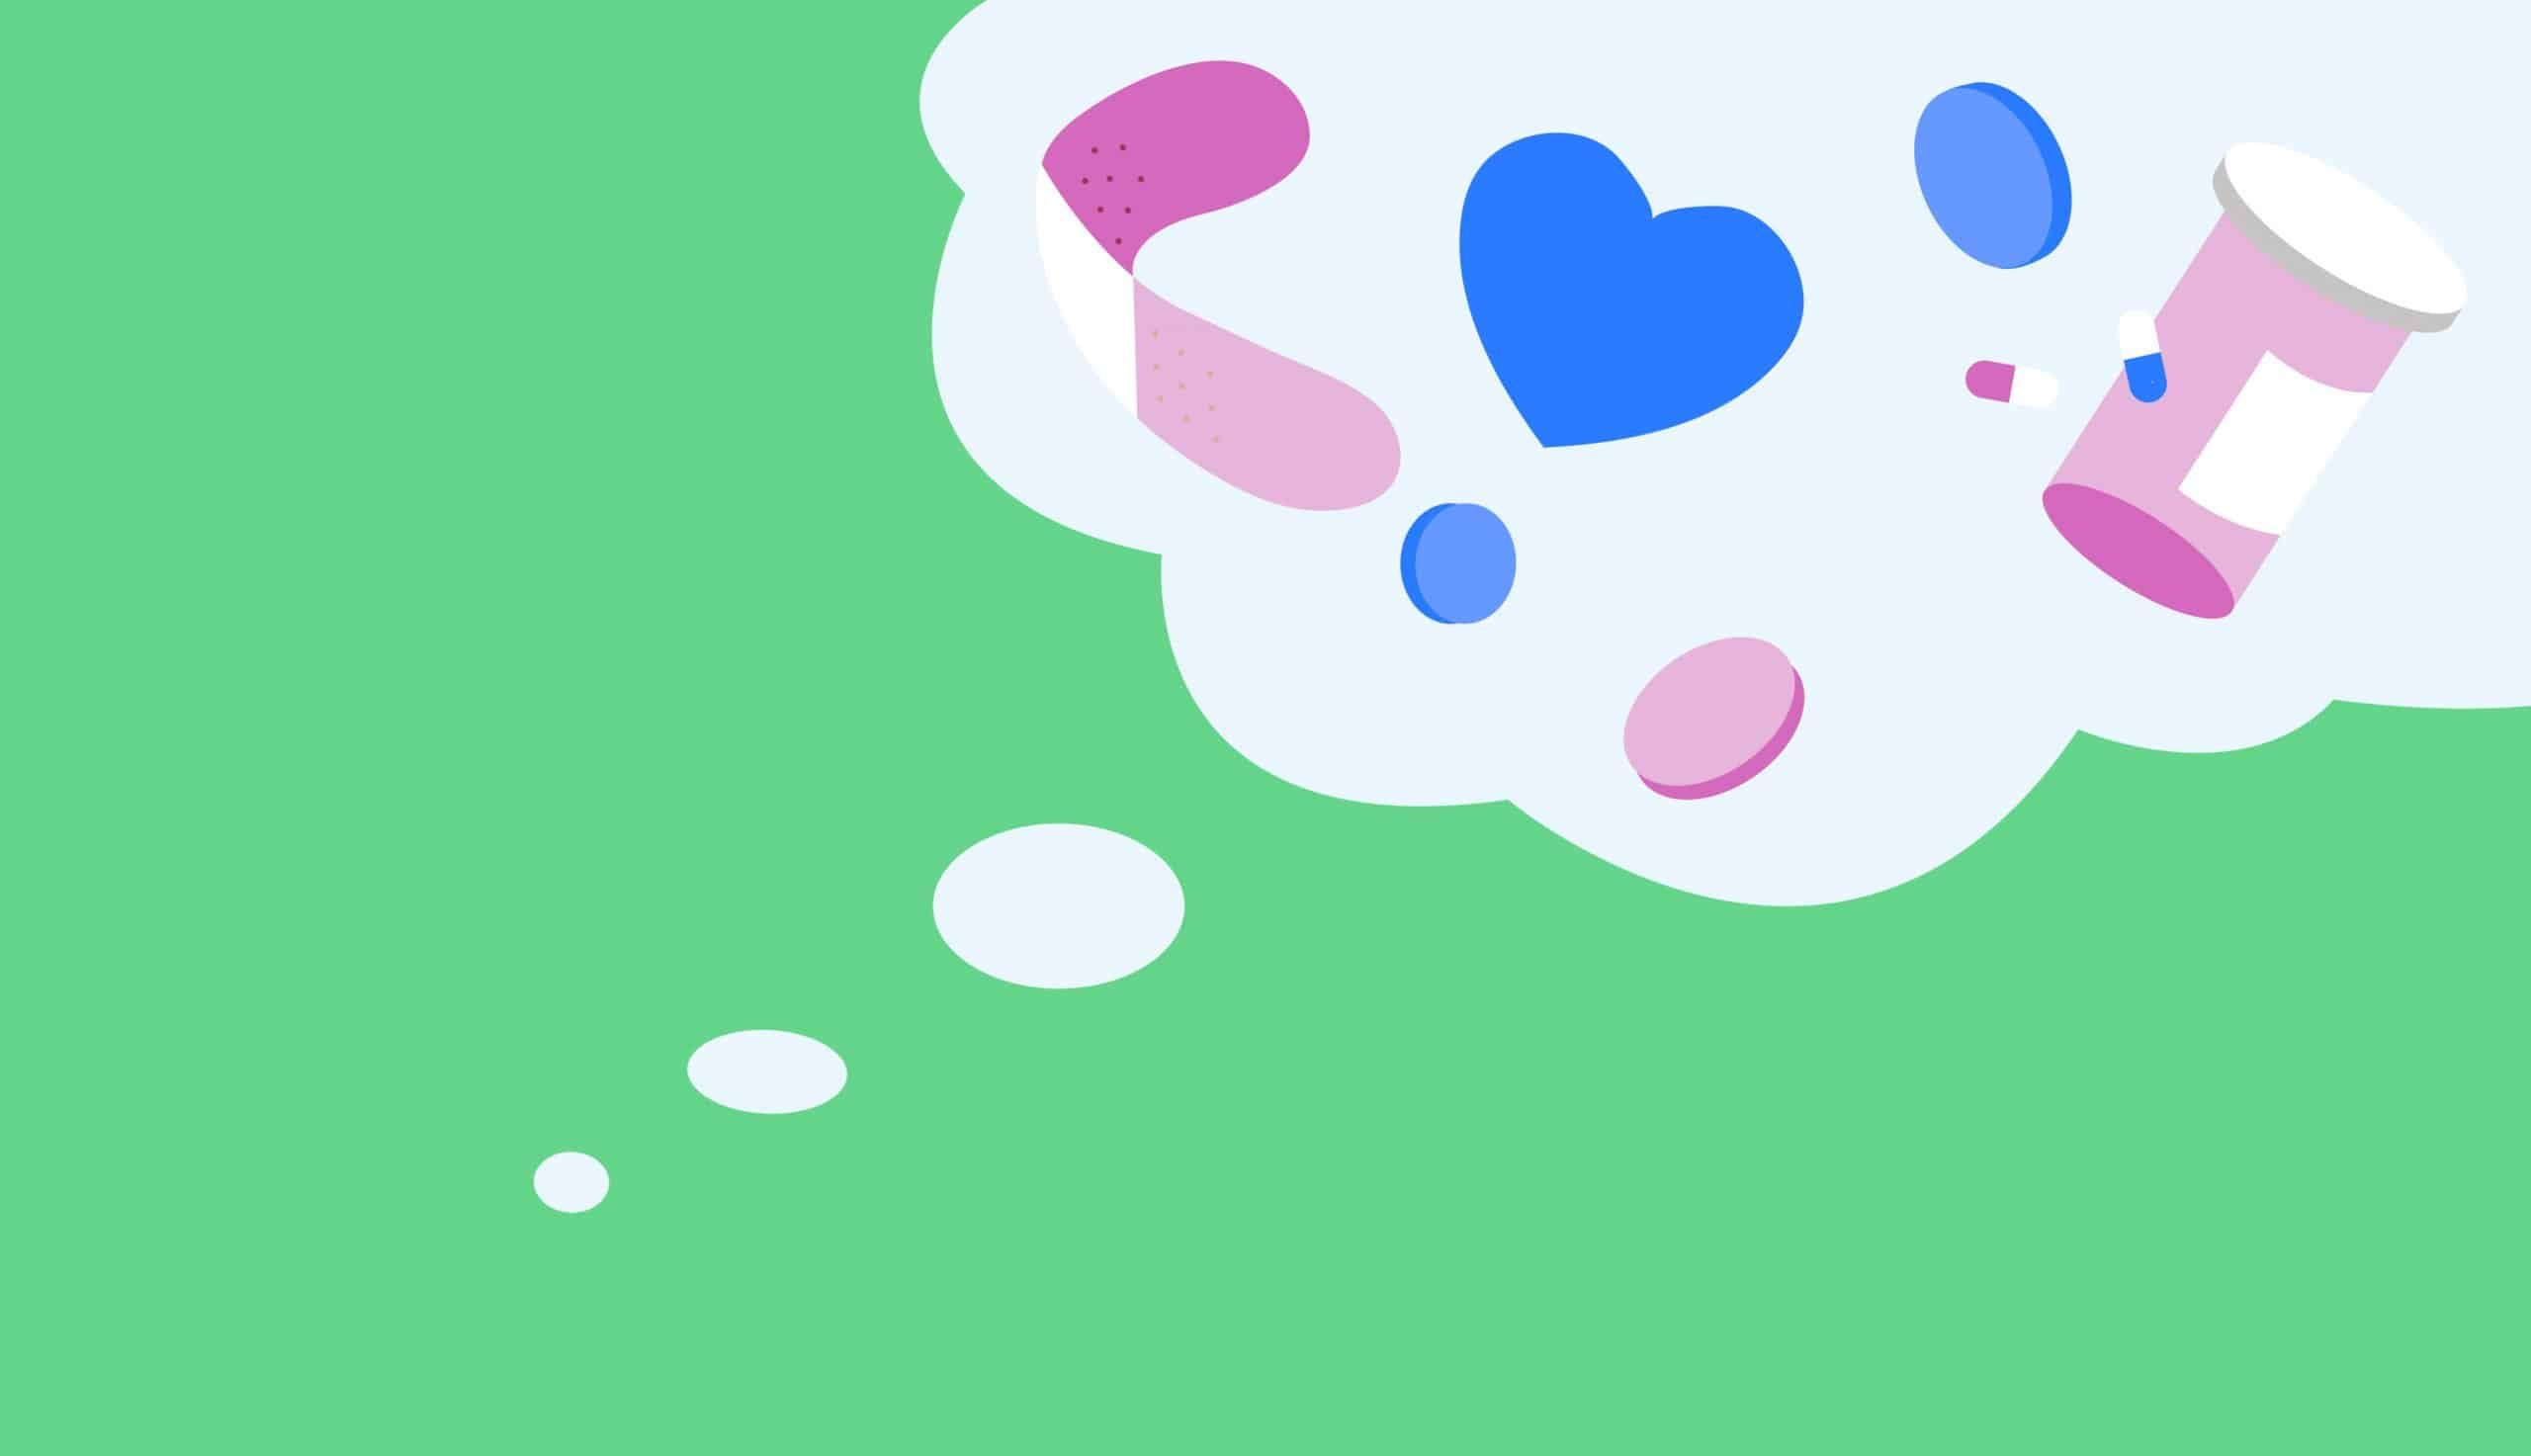 thought bubble on green background